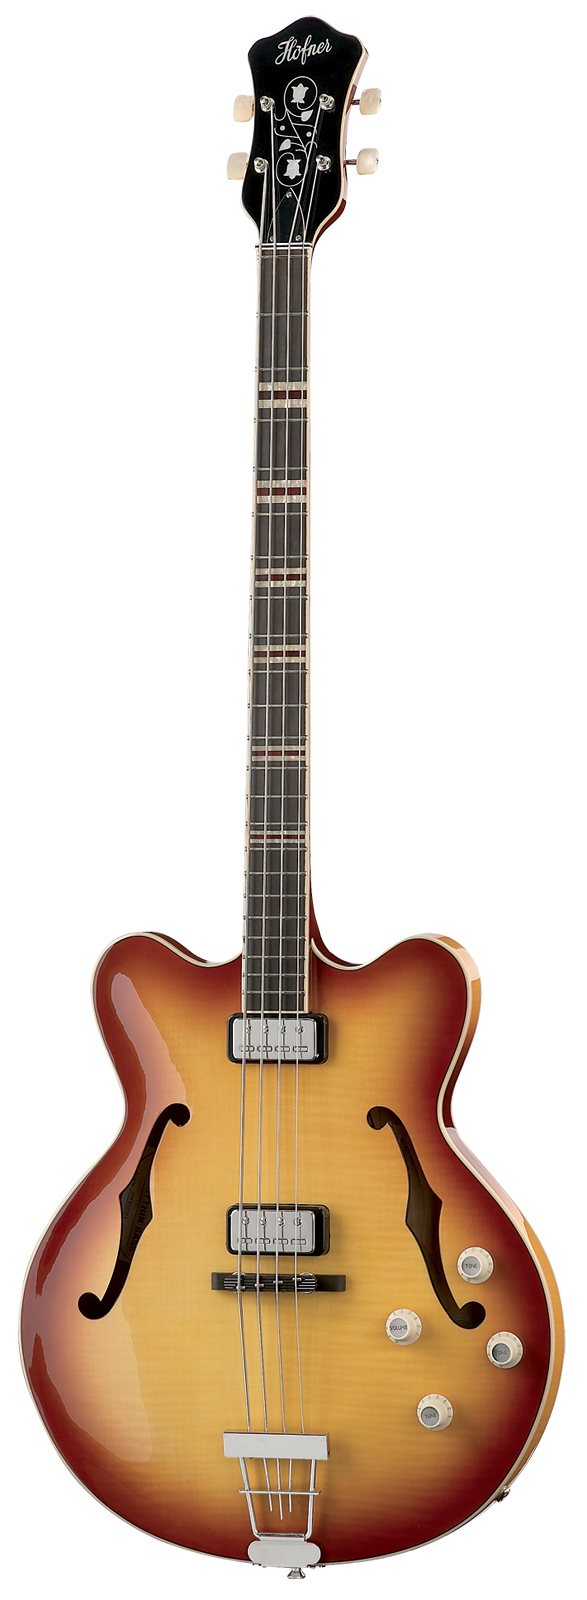 Hofner Hct-500/7-sb Verythin Sunburst